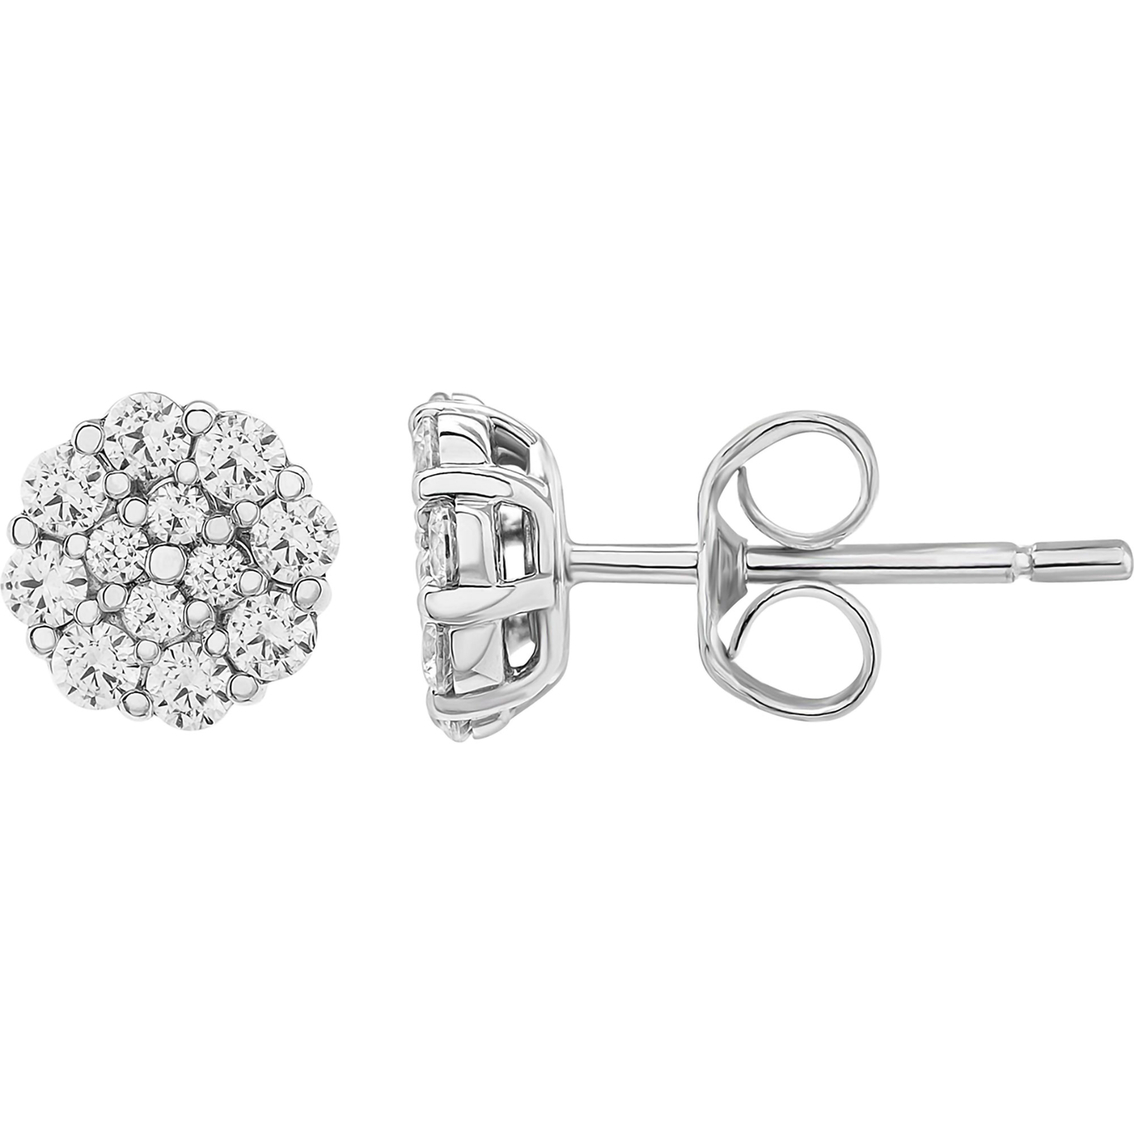 10k White Gold 1 2 Ctw Diamond Cluster Stud Earrings